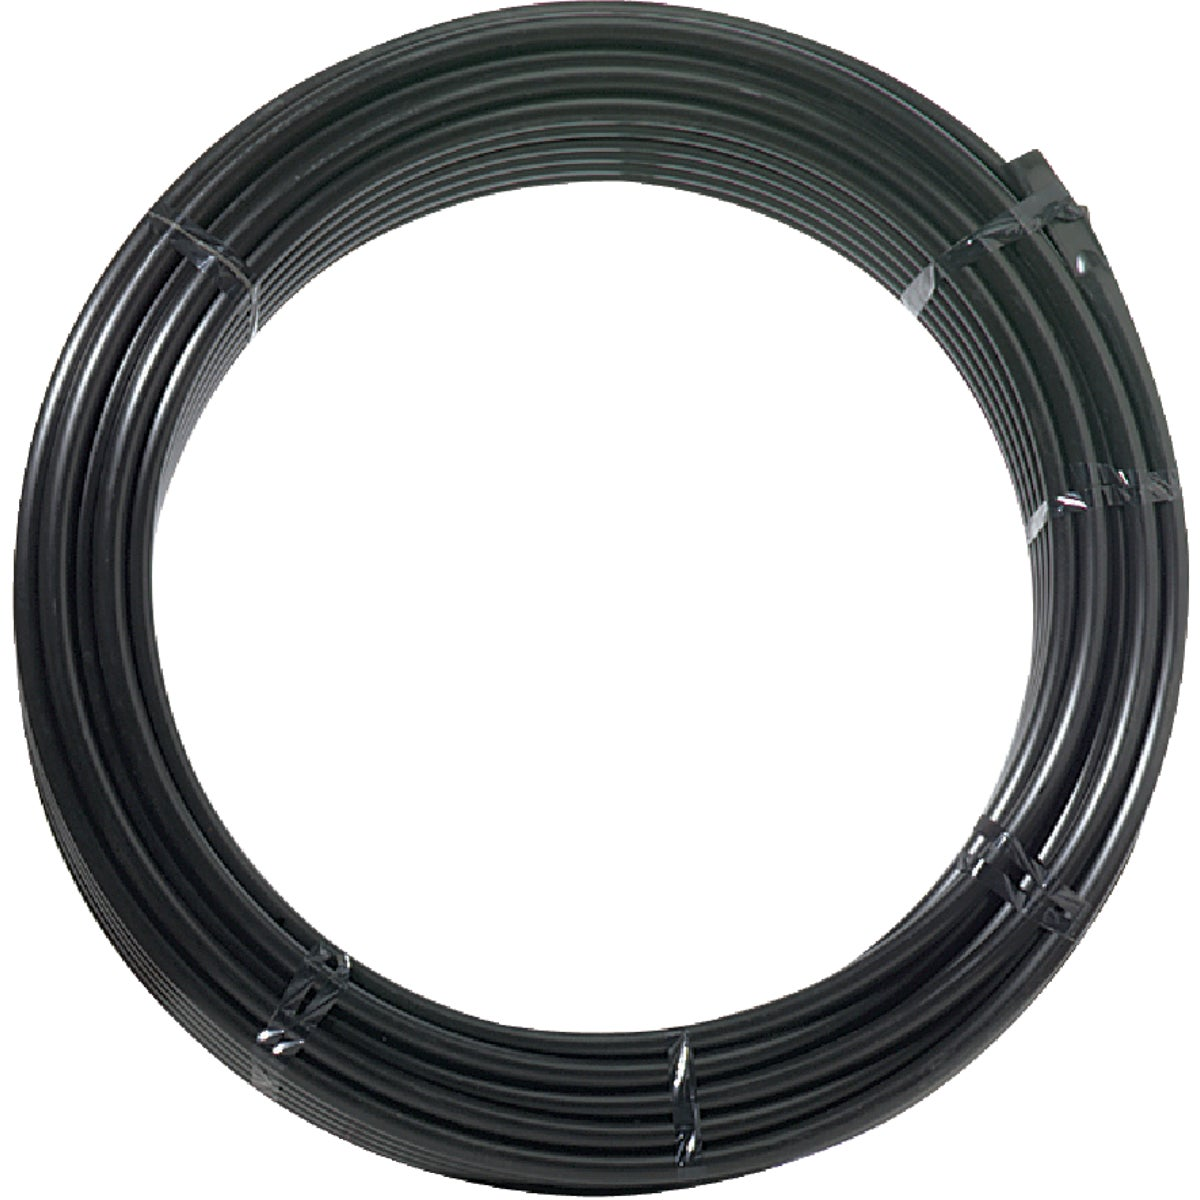 "1""X300' 100PSI PIPE - 2-1100300 by Advanced Drainage Sy"